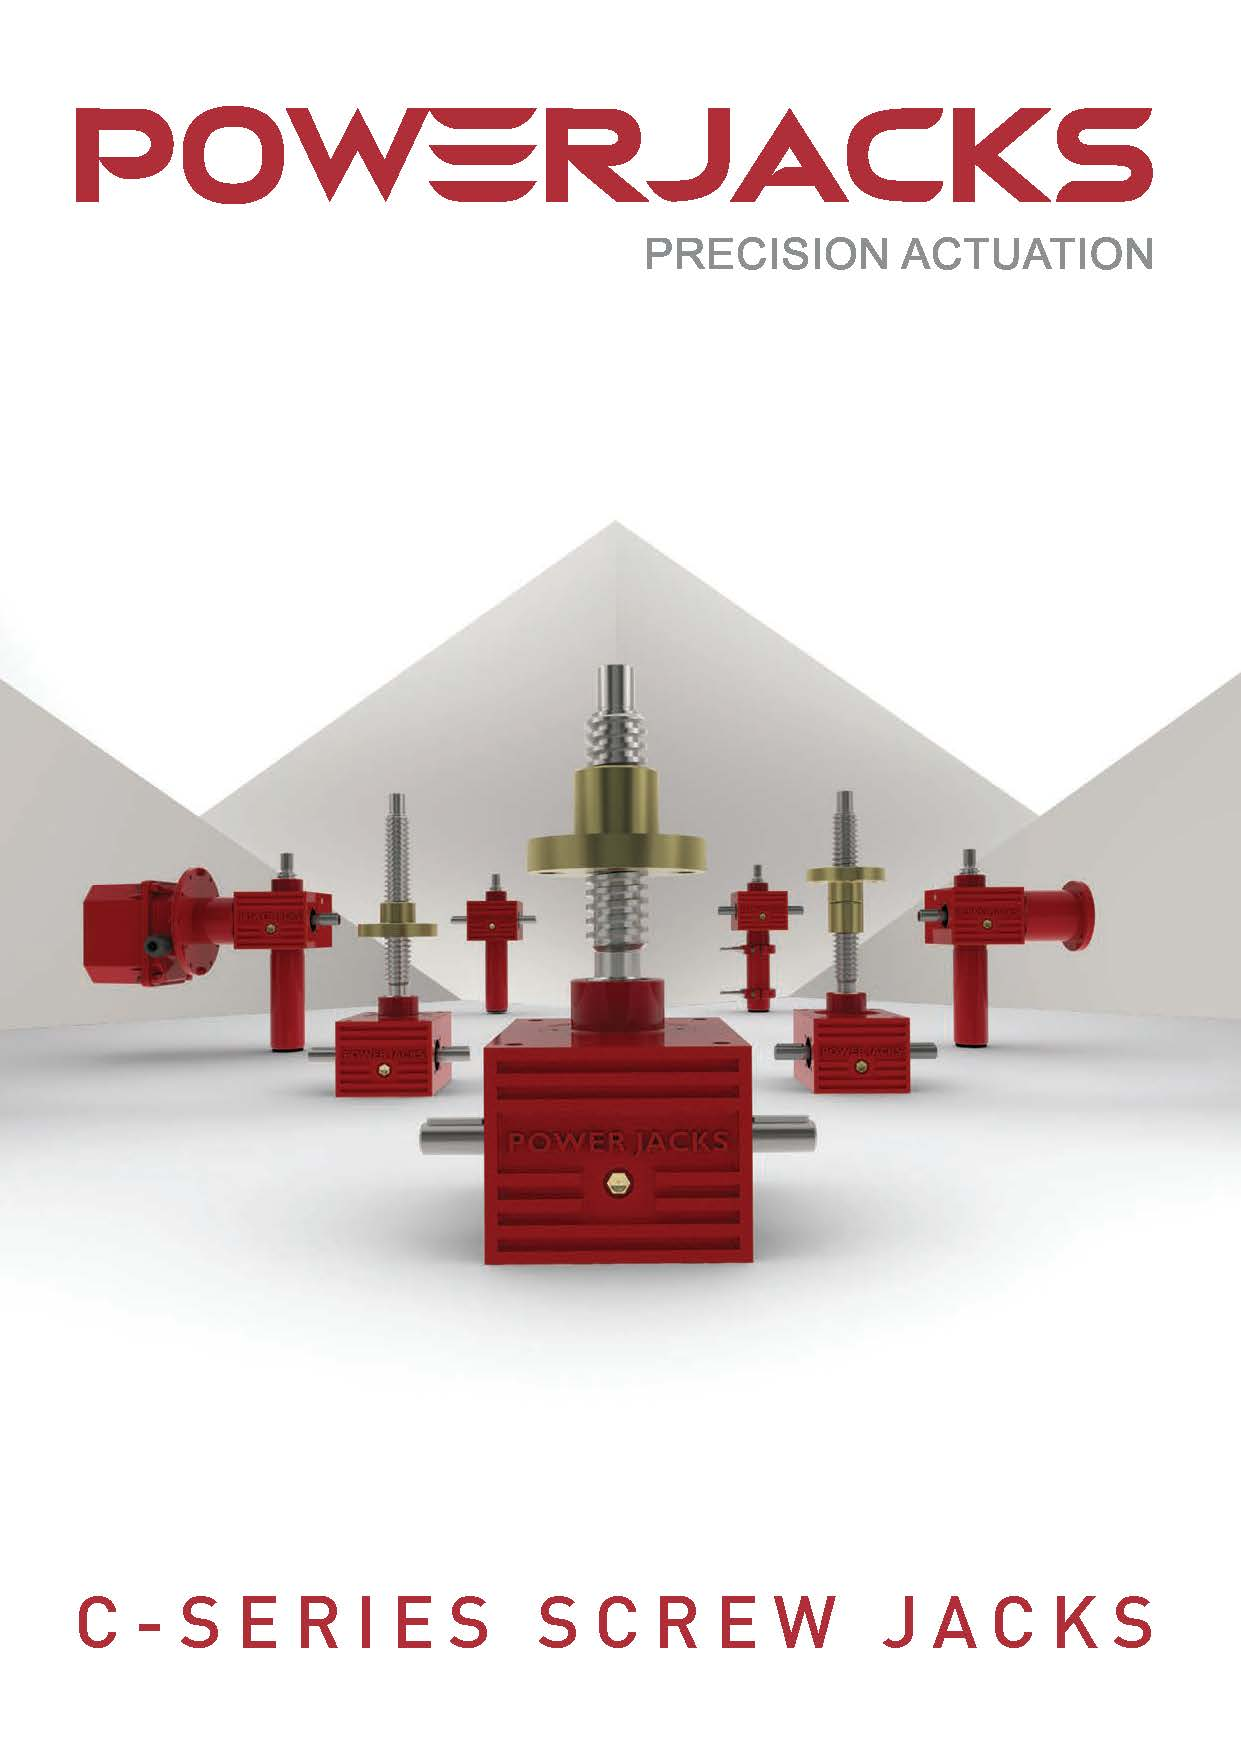 C-Series Screw Jack Brochure